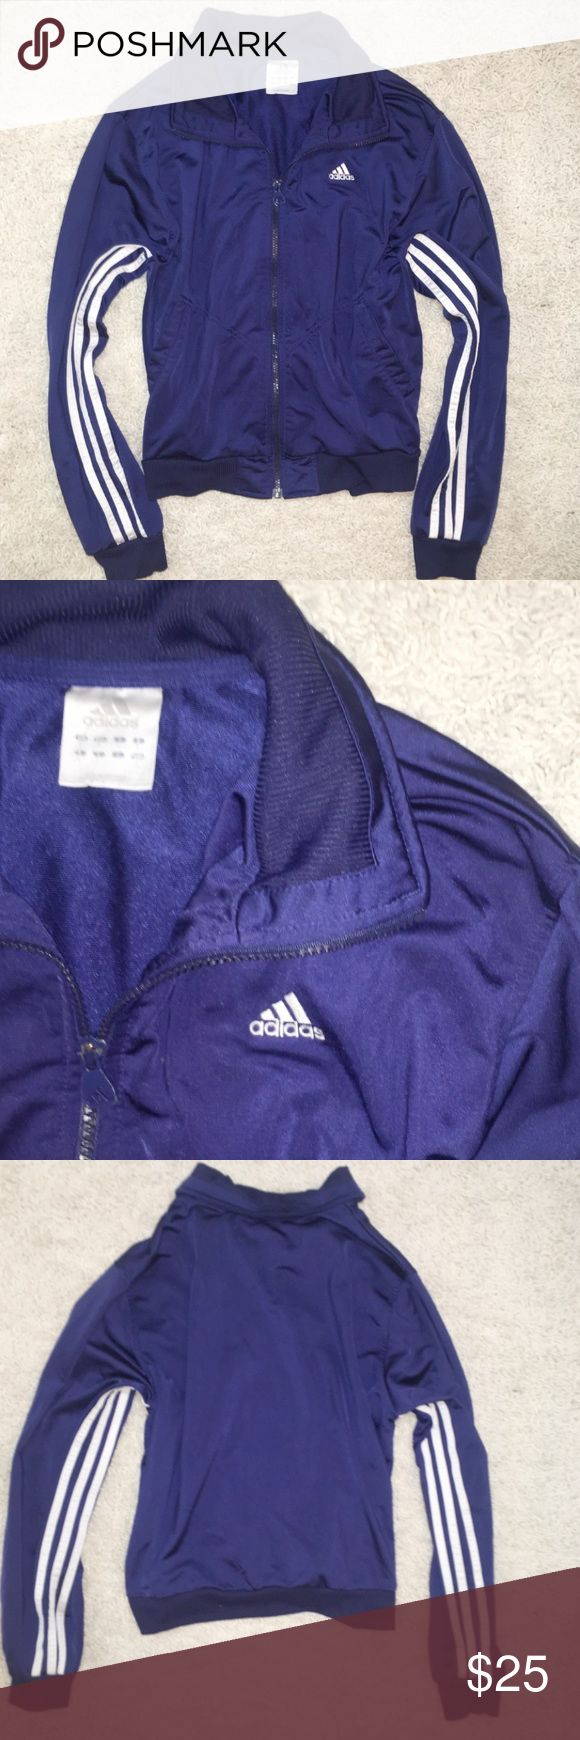 Adidas Navy Blue & White Striped Zip Up Jacket Vintage Adidas Navy Adidas Jacket Women's  Large. Excellent condition. Bundle and save 20%. Adidas Jackets & Coats